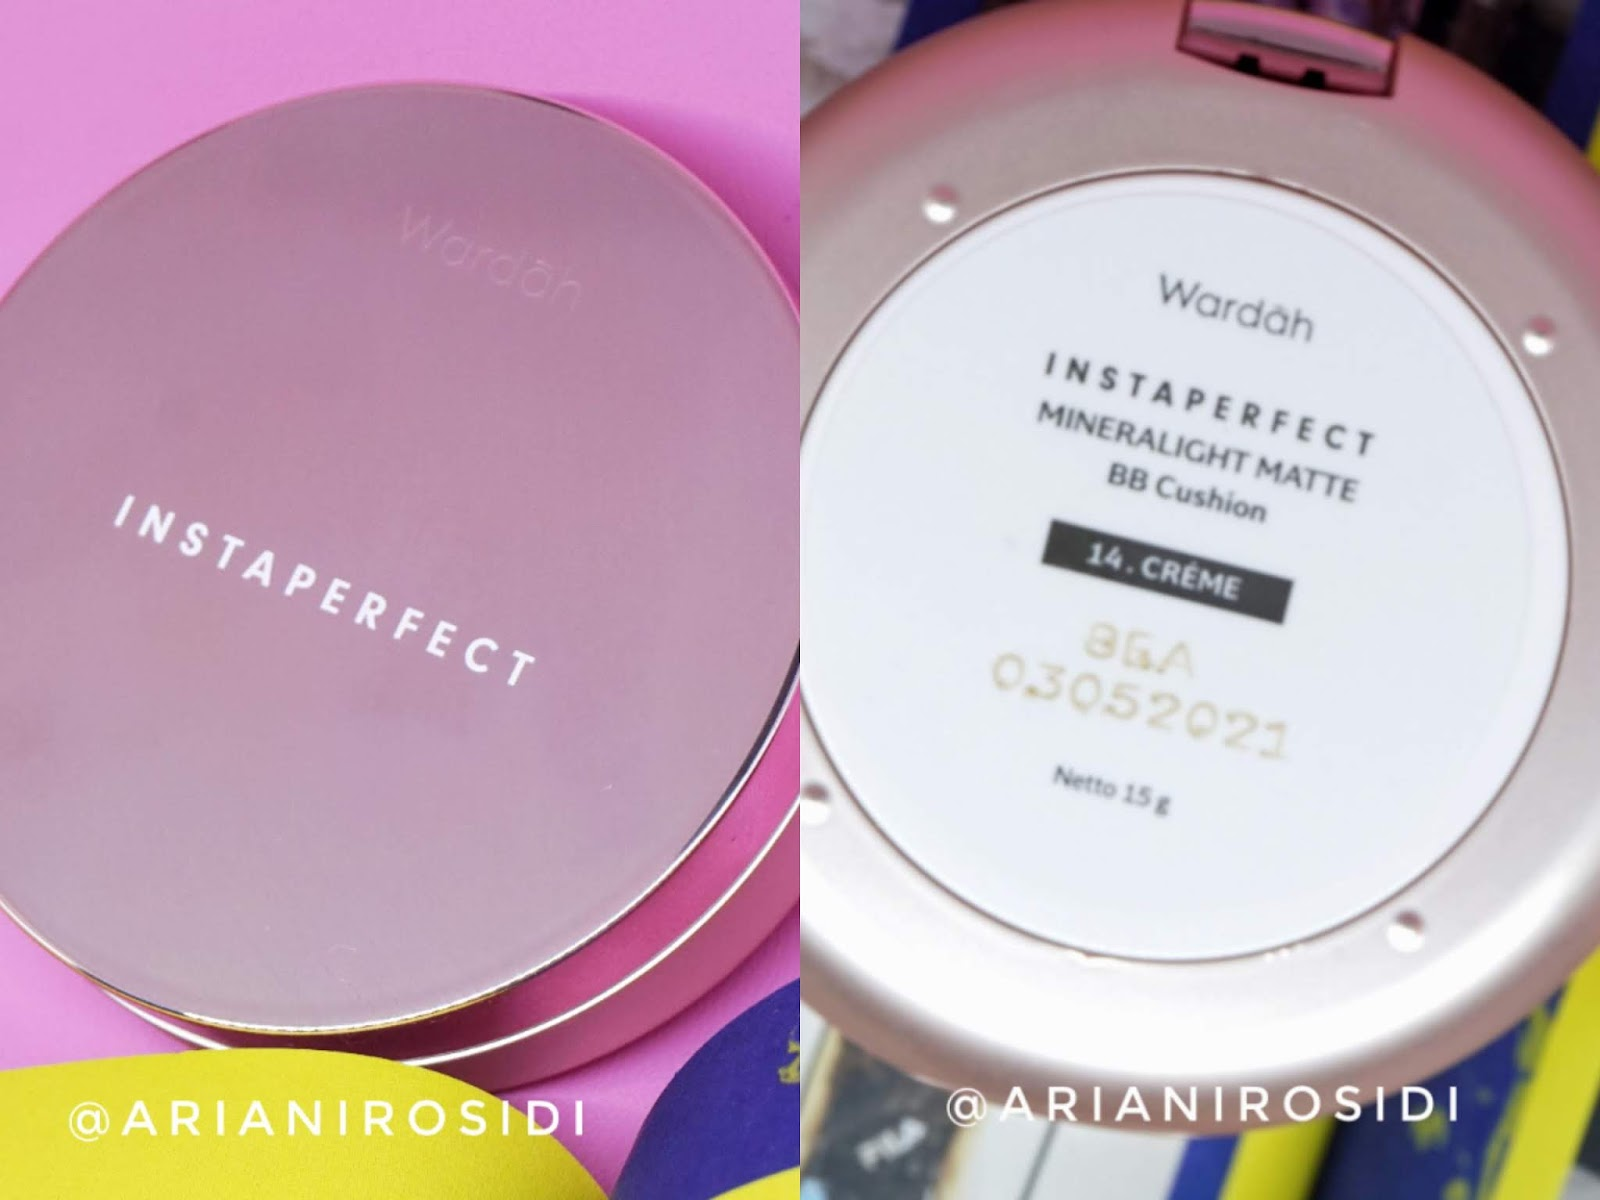 WARDAH INSTAPERFECT MINERALIGHT MATTE BB CUSHION REVIEW